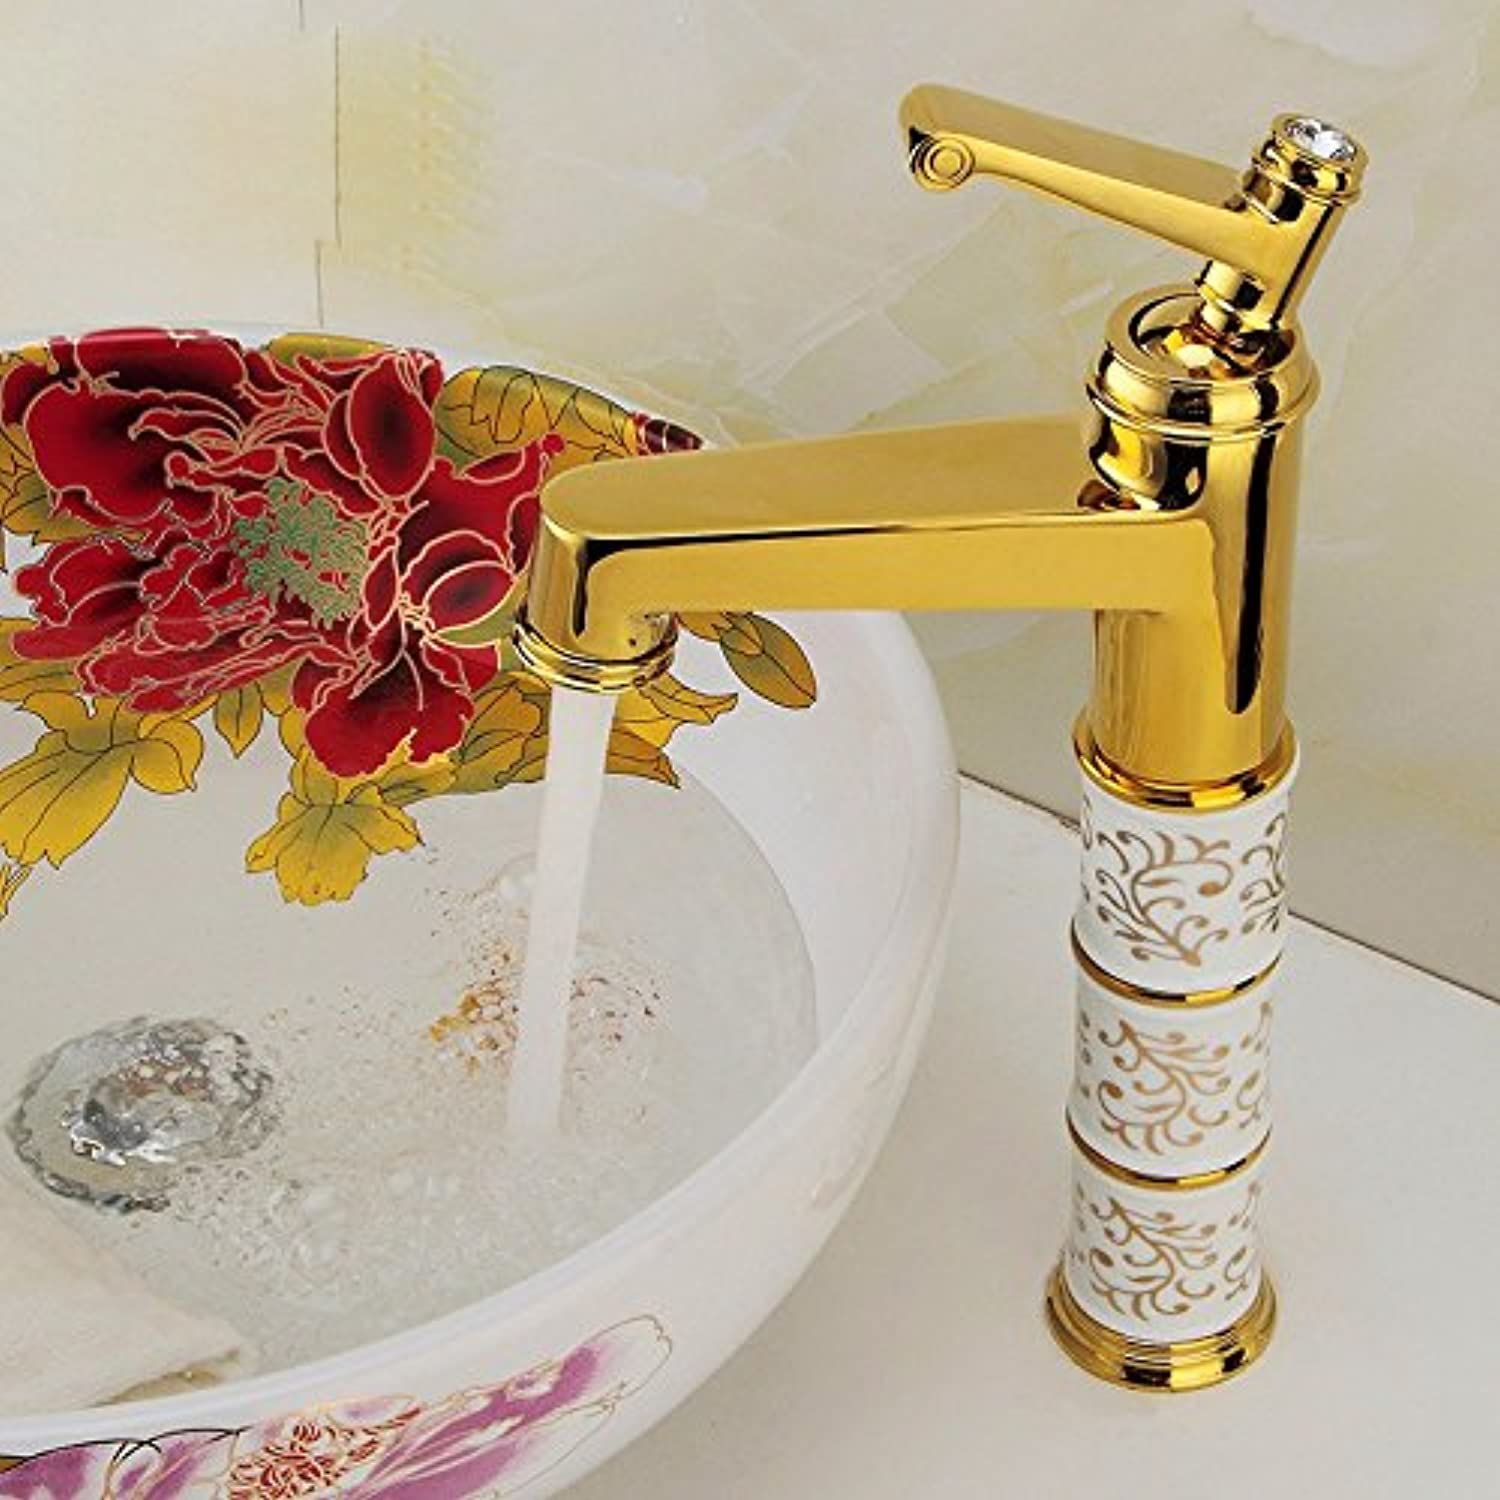 Commercial Single Lever Pull Down Kitchen Sink Faucet Brass Constructed Polished Ceramic Hot and Cold Water Faucet, Kitchen Faucet, Above Counter Basin Faucet, Single-Type Mixing Faucet